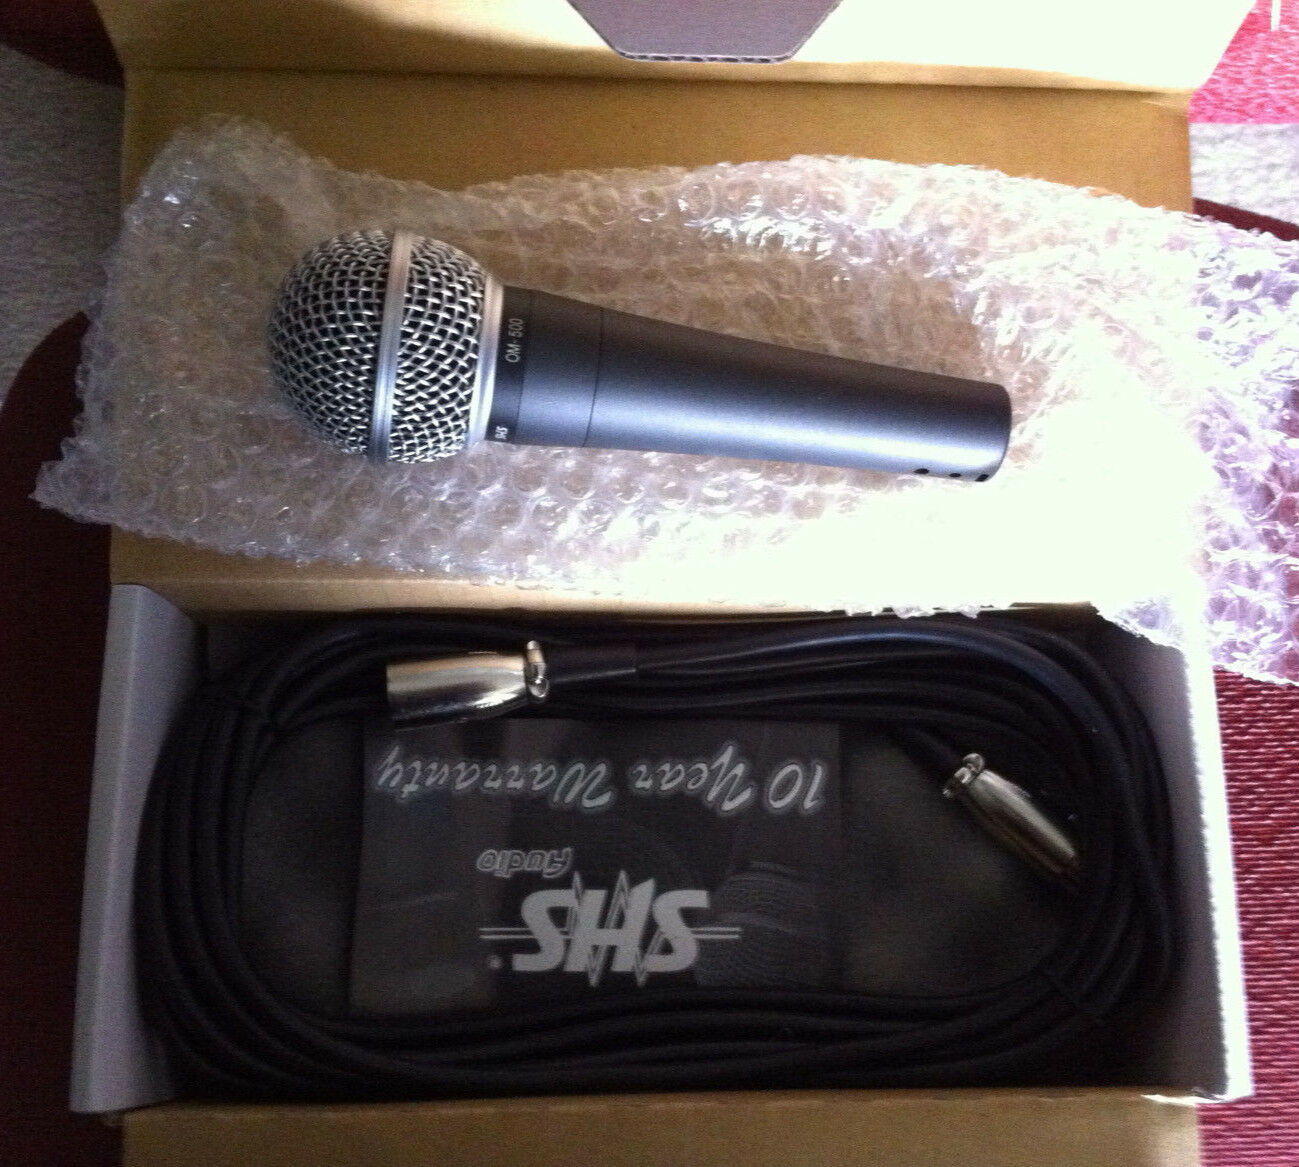 SHS OM-500 Professional vocal microphone, compares directly to Shure SM-58